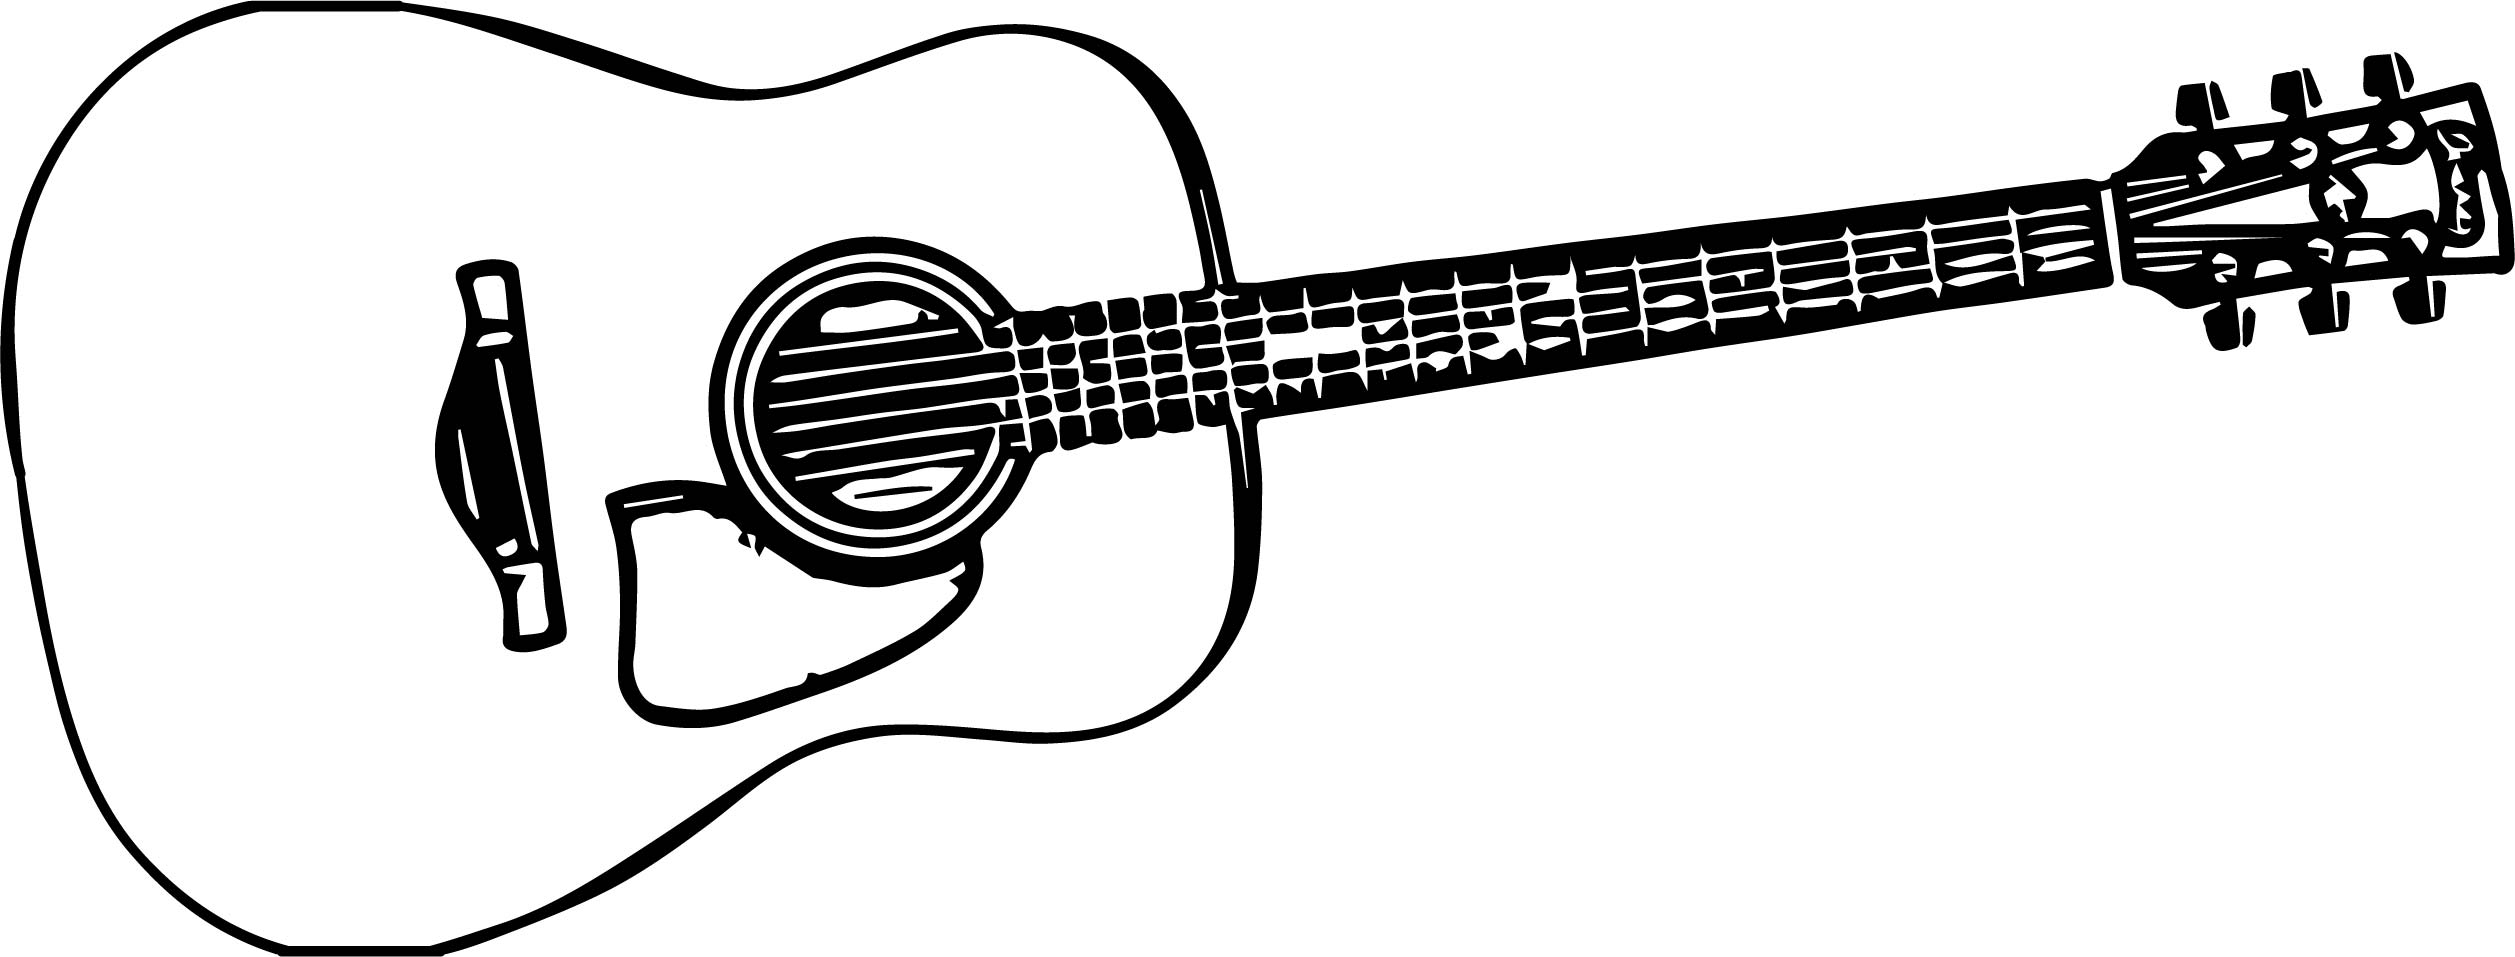 Basic Guitar Playing The Guitar Coloring Page